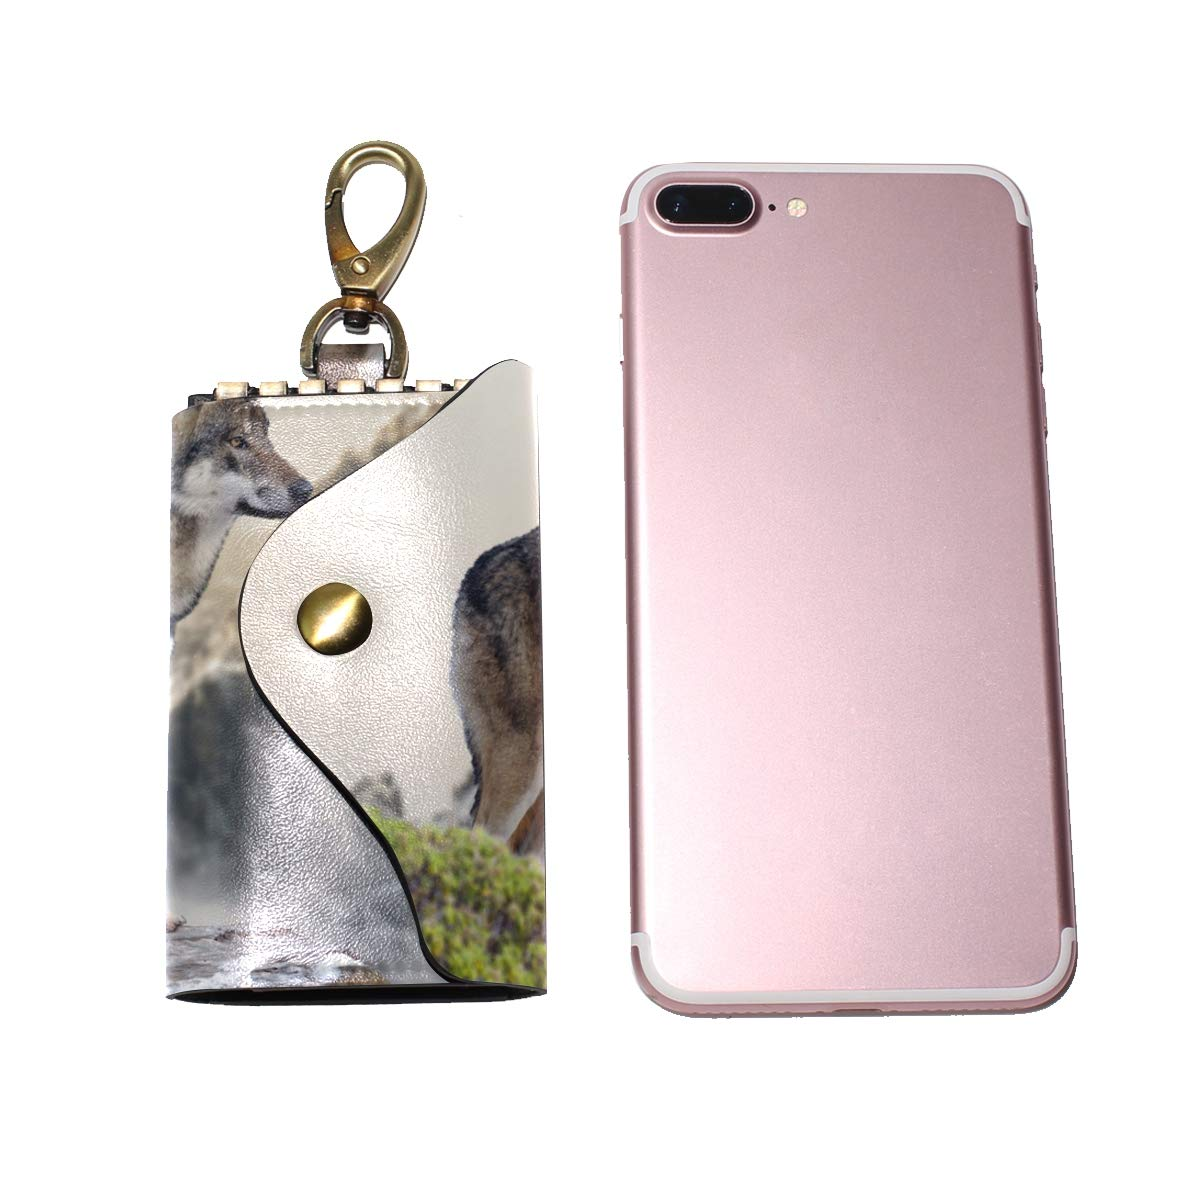 KEAKIA Wolf On The Mountain Leather Key Case Wallets Tri-fold Key Holder Keychains with 6 Hooks 2 Slot Snap Closure for Men Women